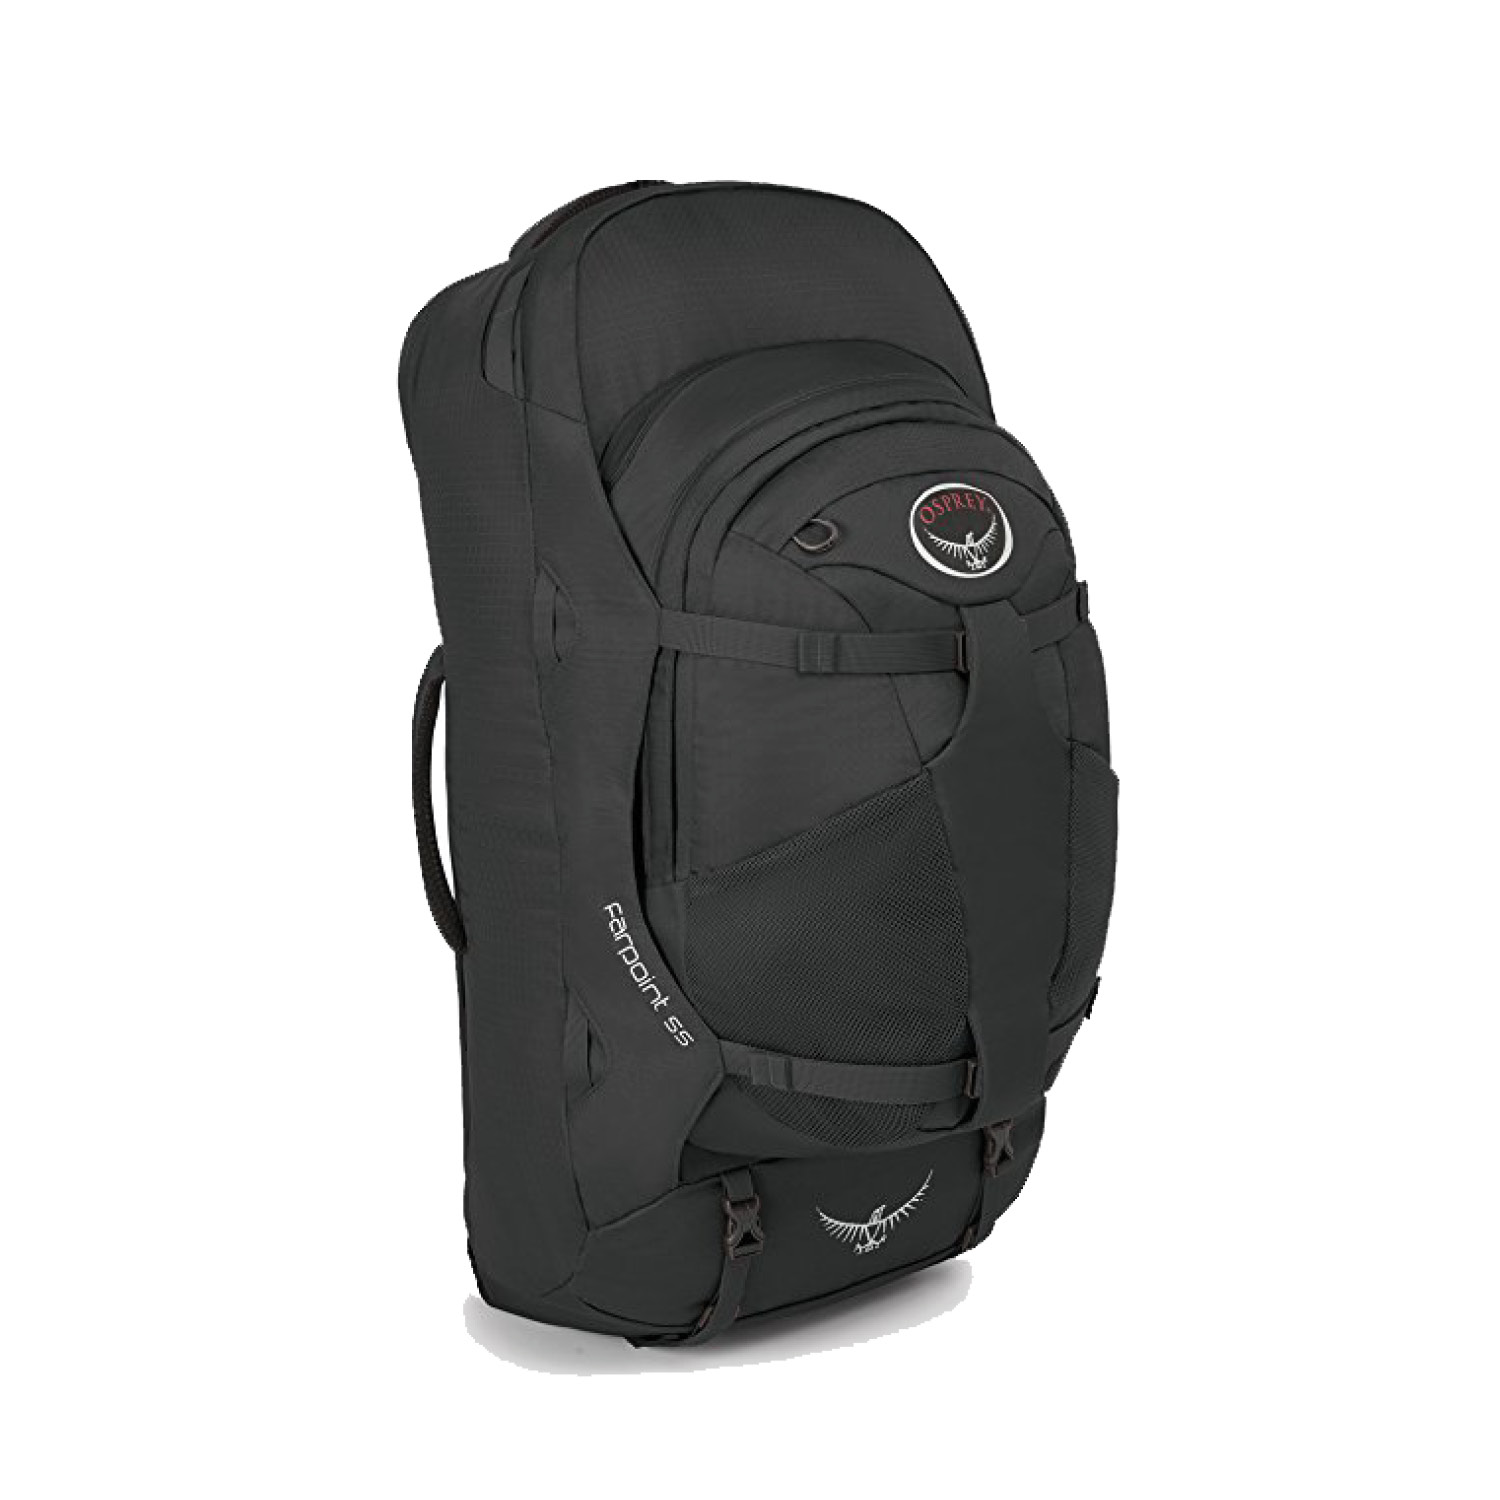 osprey  farpoint 55 - 40L travel backpack+ detachable 15L daypack